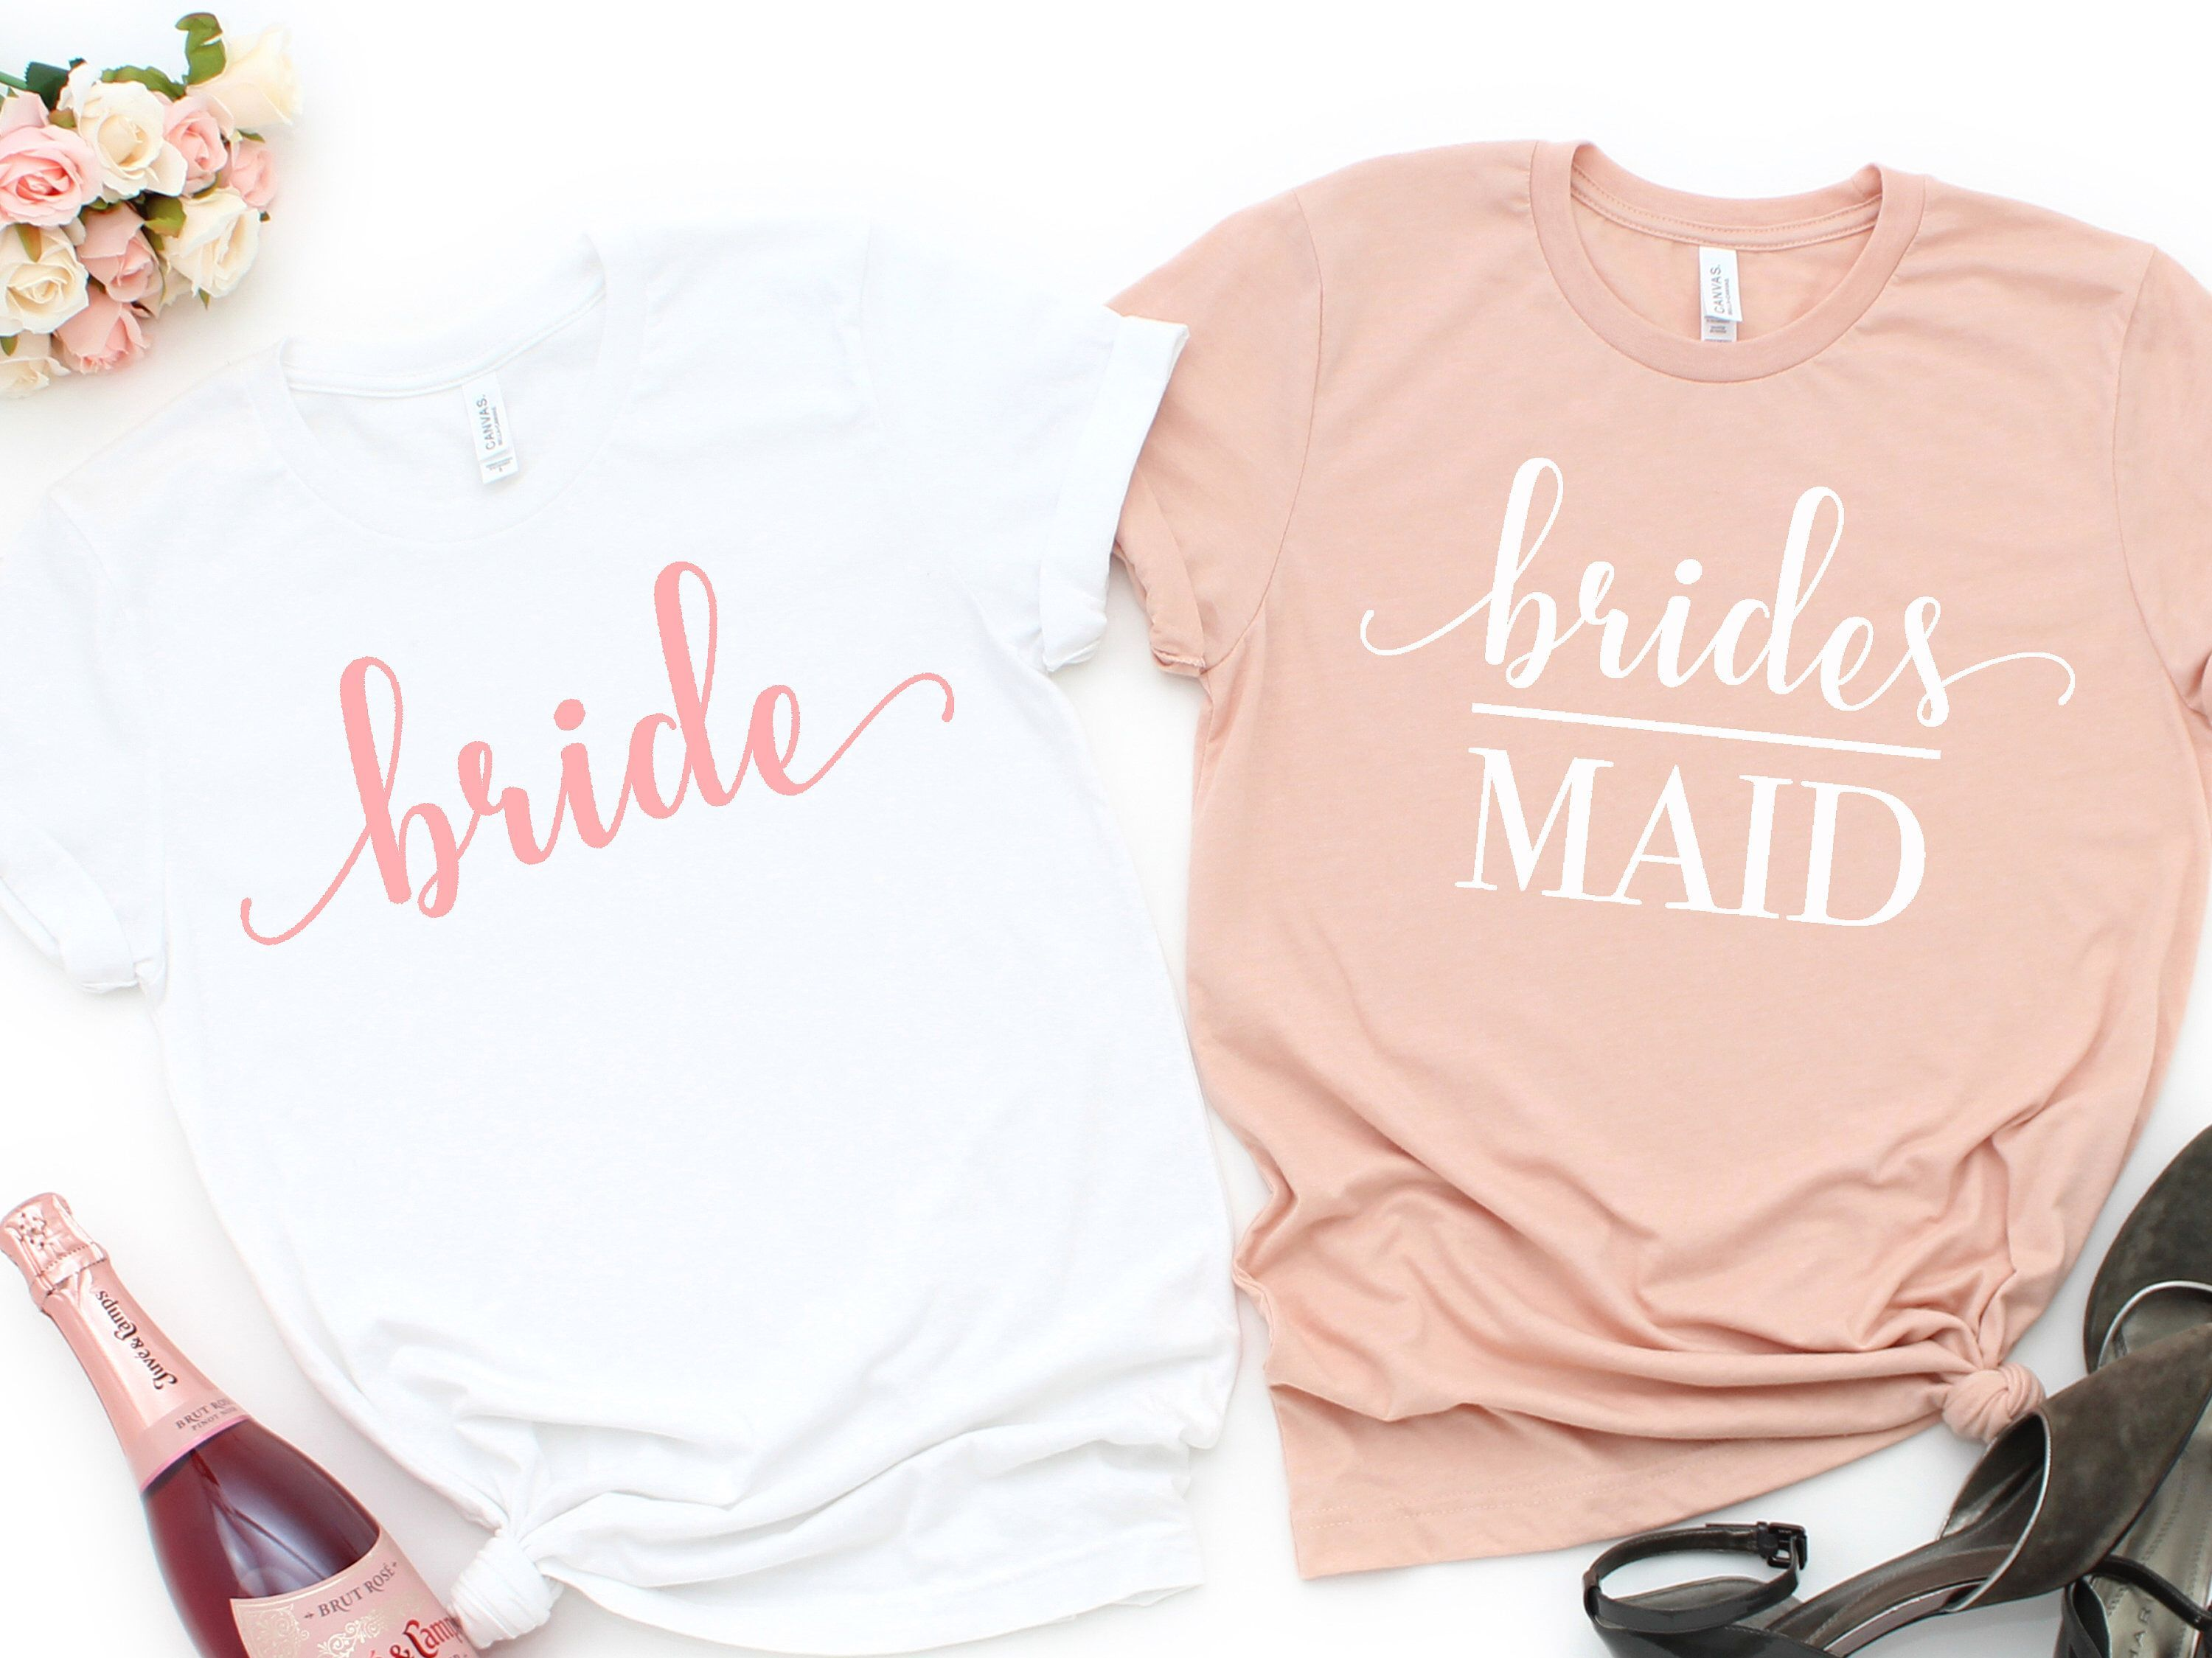 Bachelorette Party Shirts Funny Bachelorette Shirt Mother of the Bride Shirts Wedding Party Shirt Bridal Party Shirt Bridesmaid Gift 6  Excited to share this item from my...